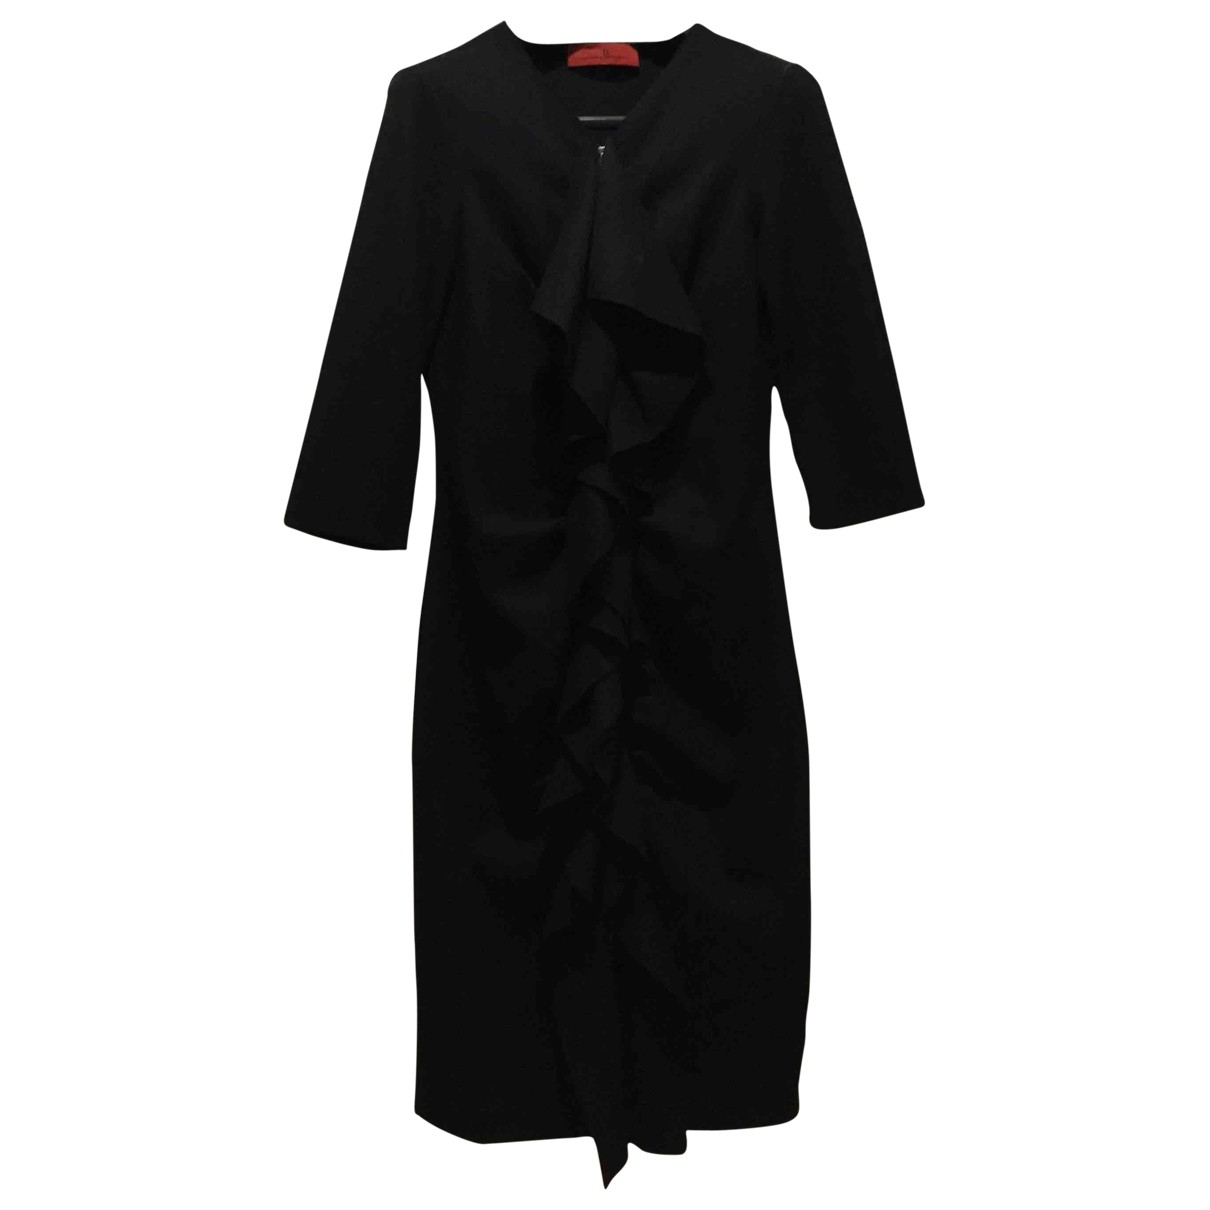 Carolina Herrera \N Black Wool dress for Women 4 US